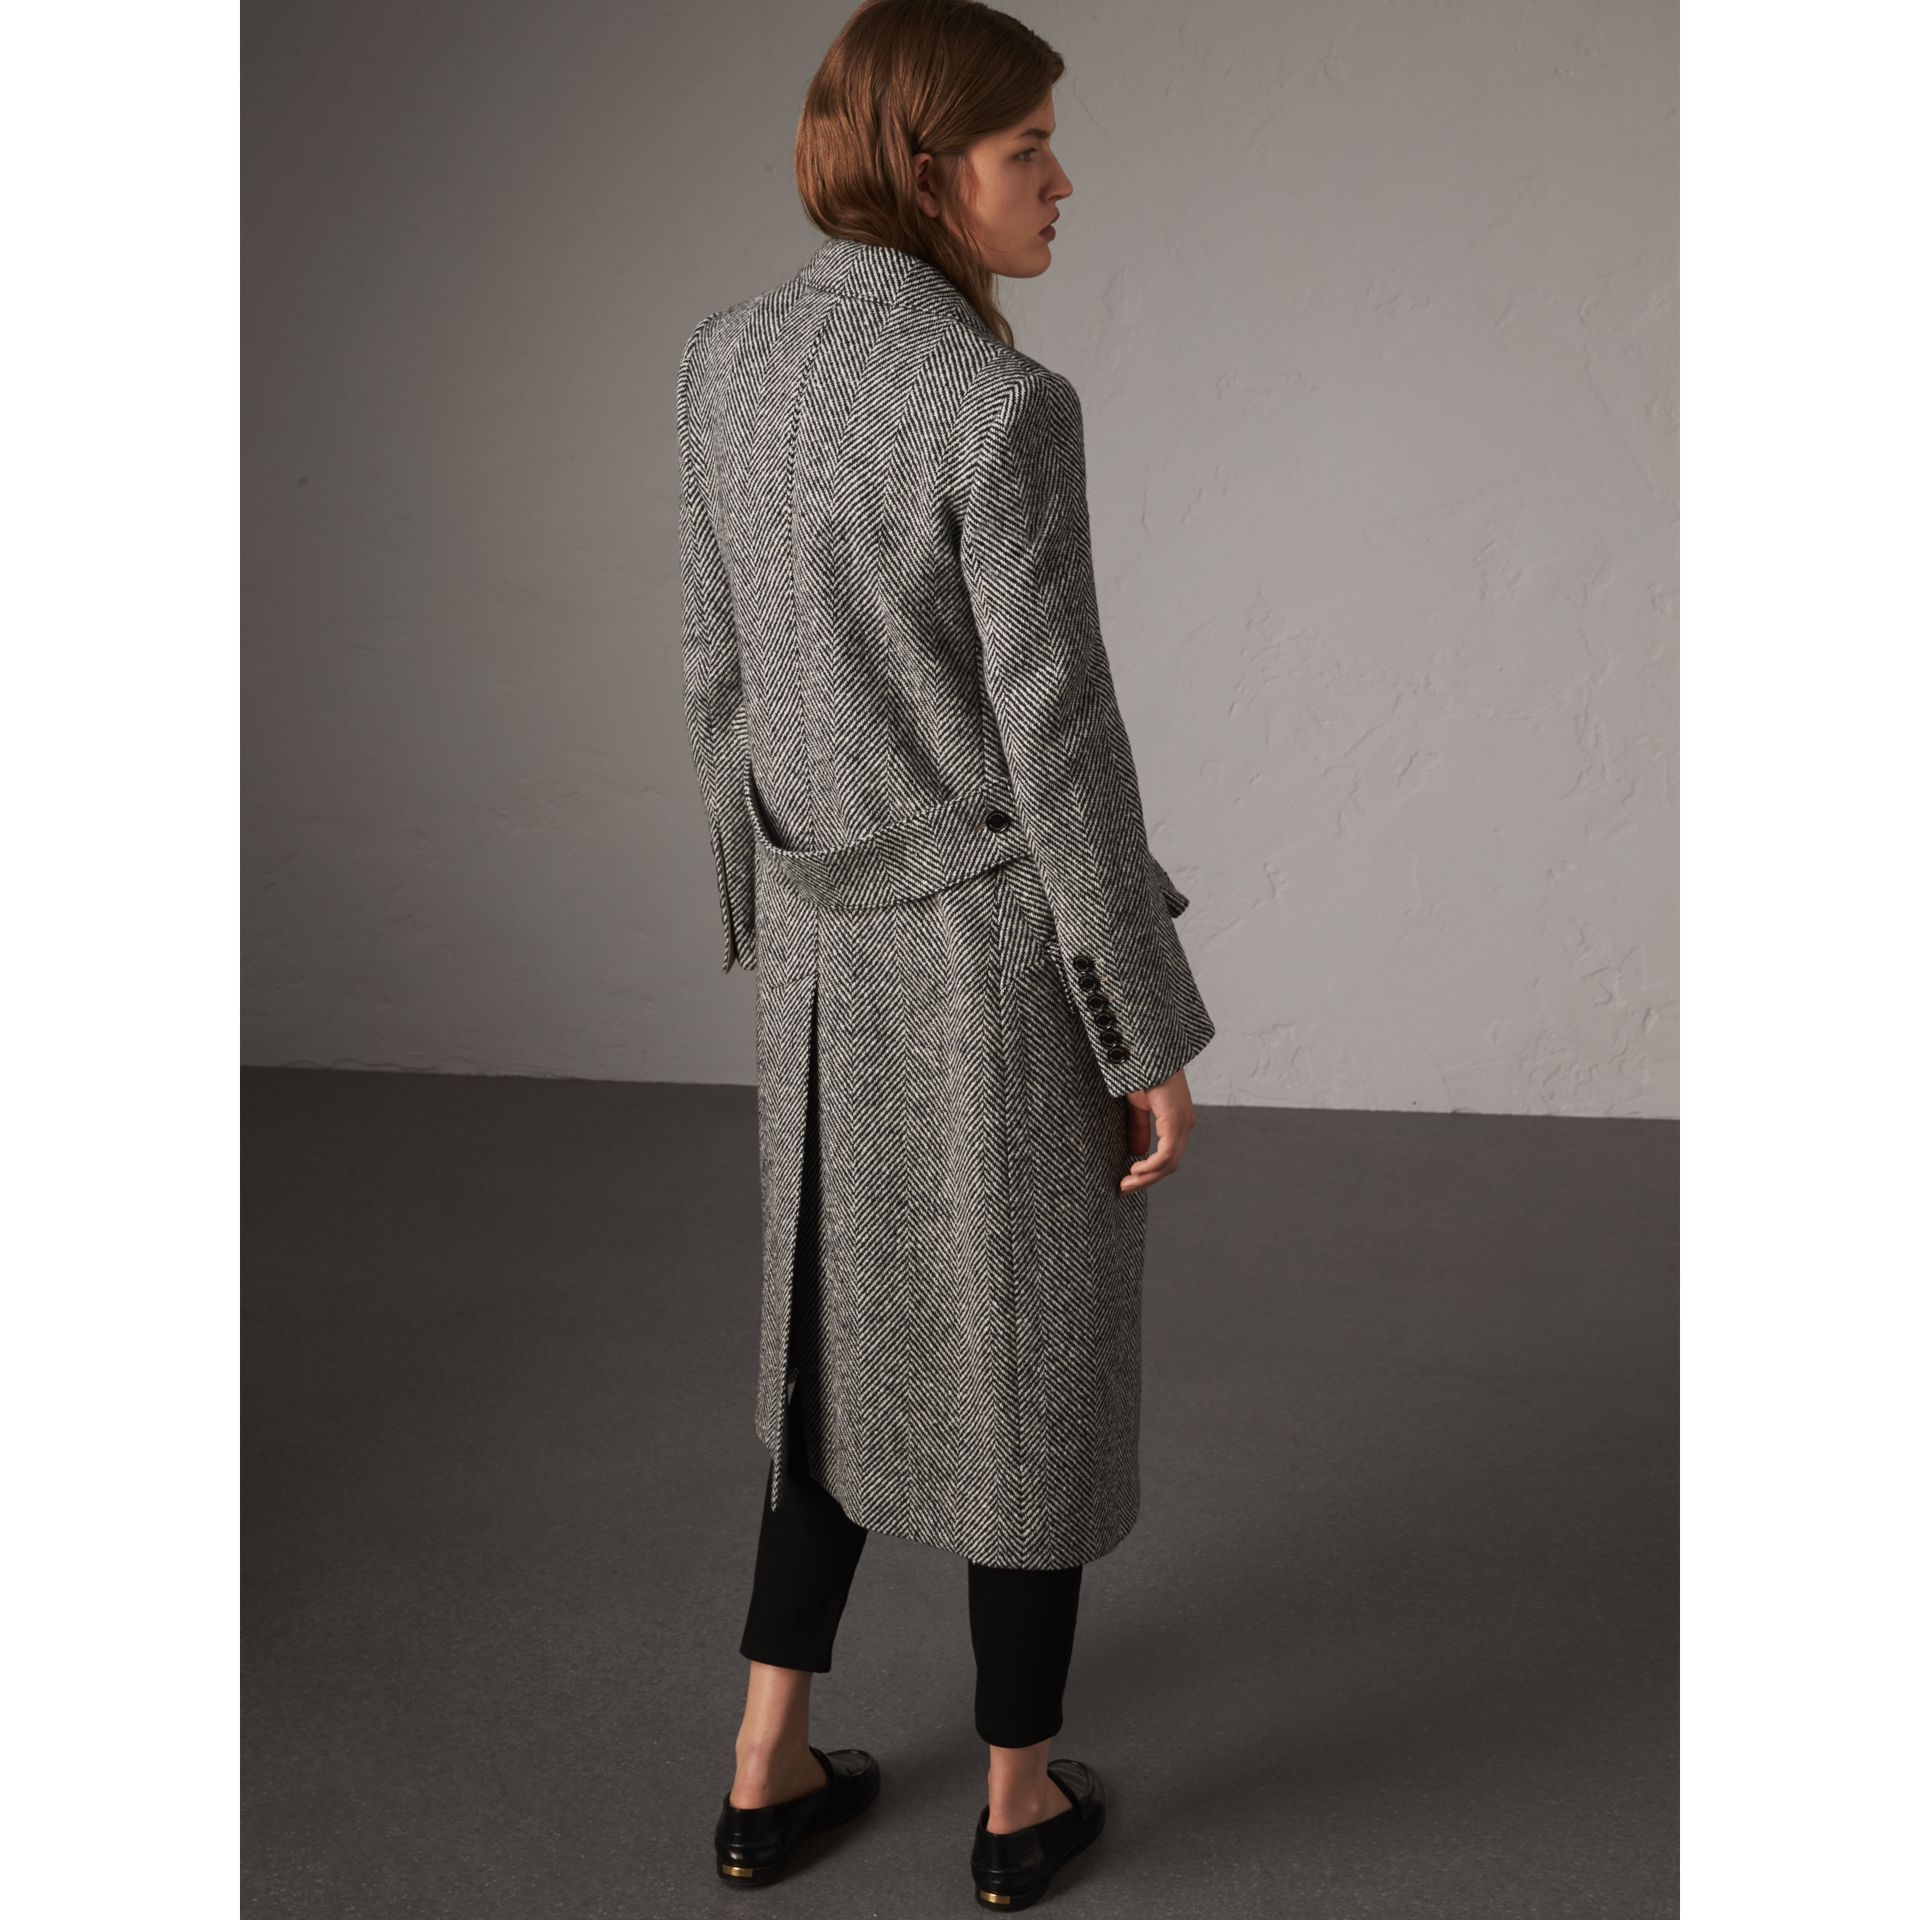 Donegal Herringbone Wool Tweed Tailored Coat - Women | Burberry Australia - gallery image 3